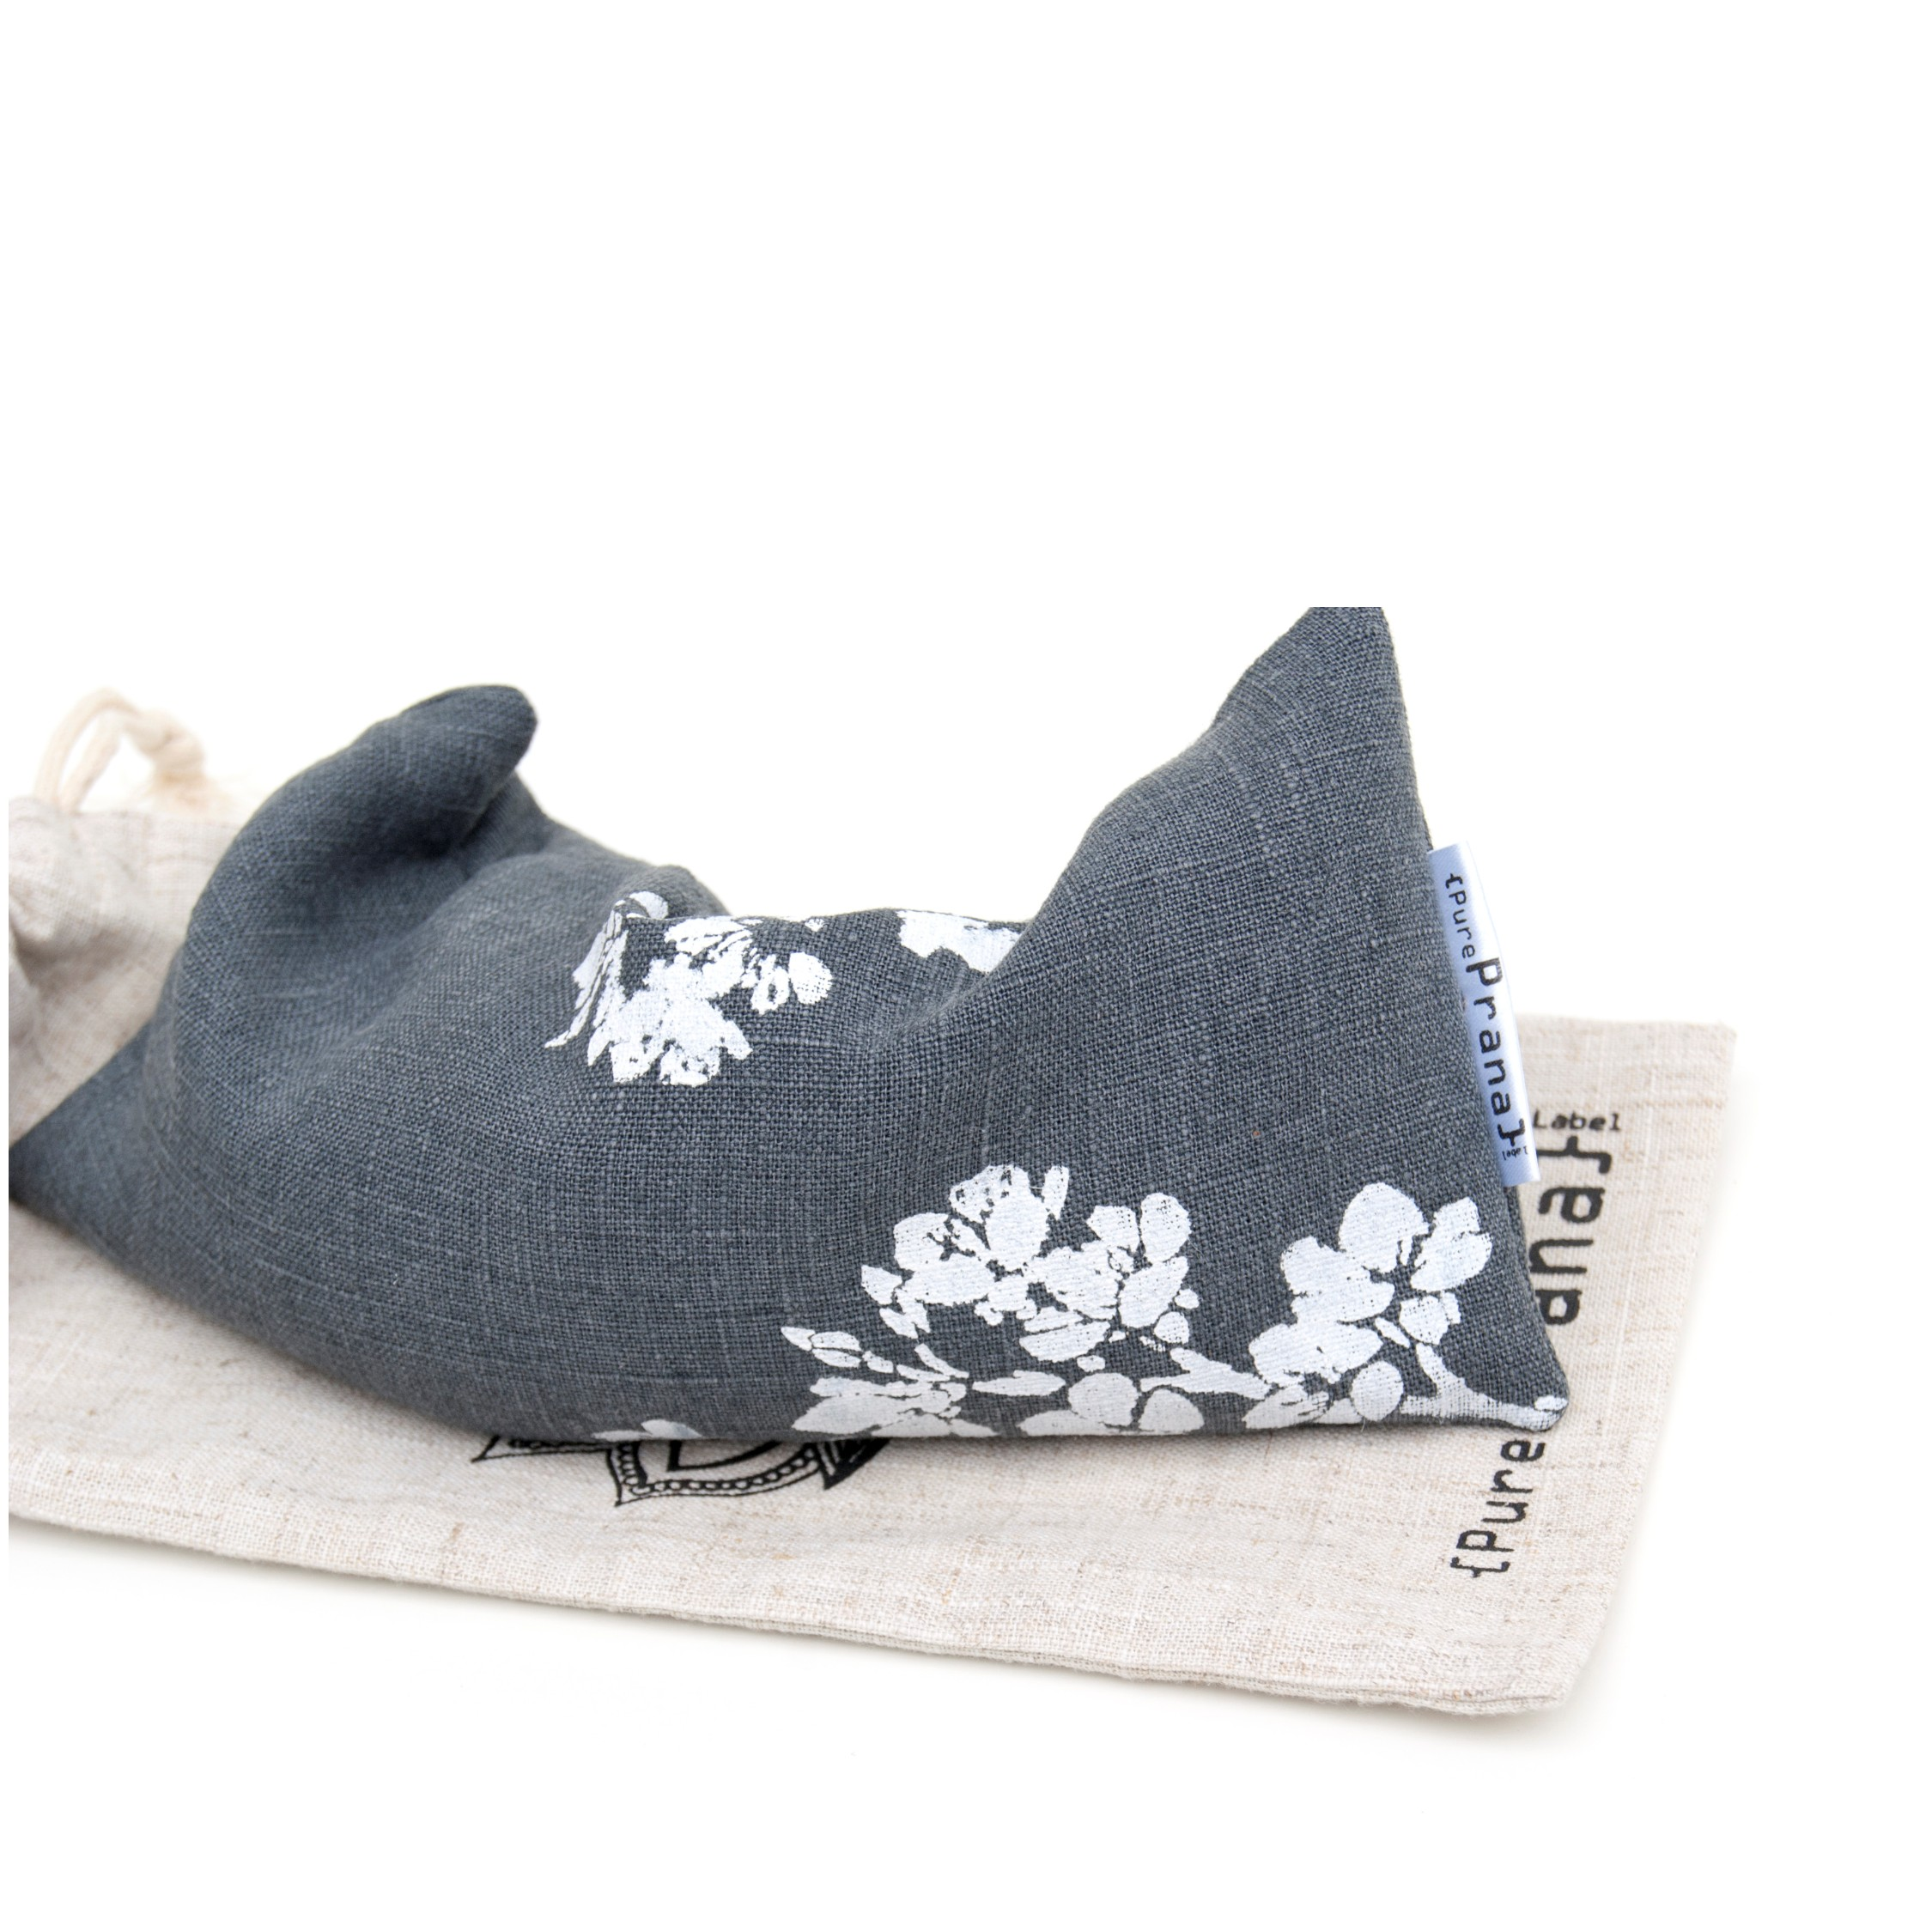 Lavender eye pillow Cherry Blossom by Pure Prana label